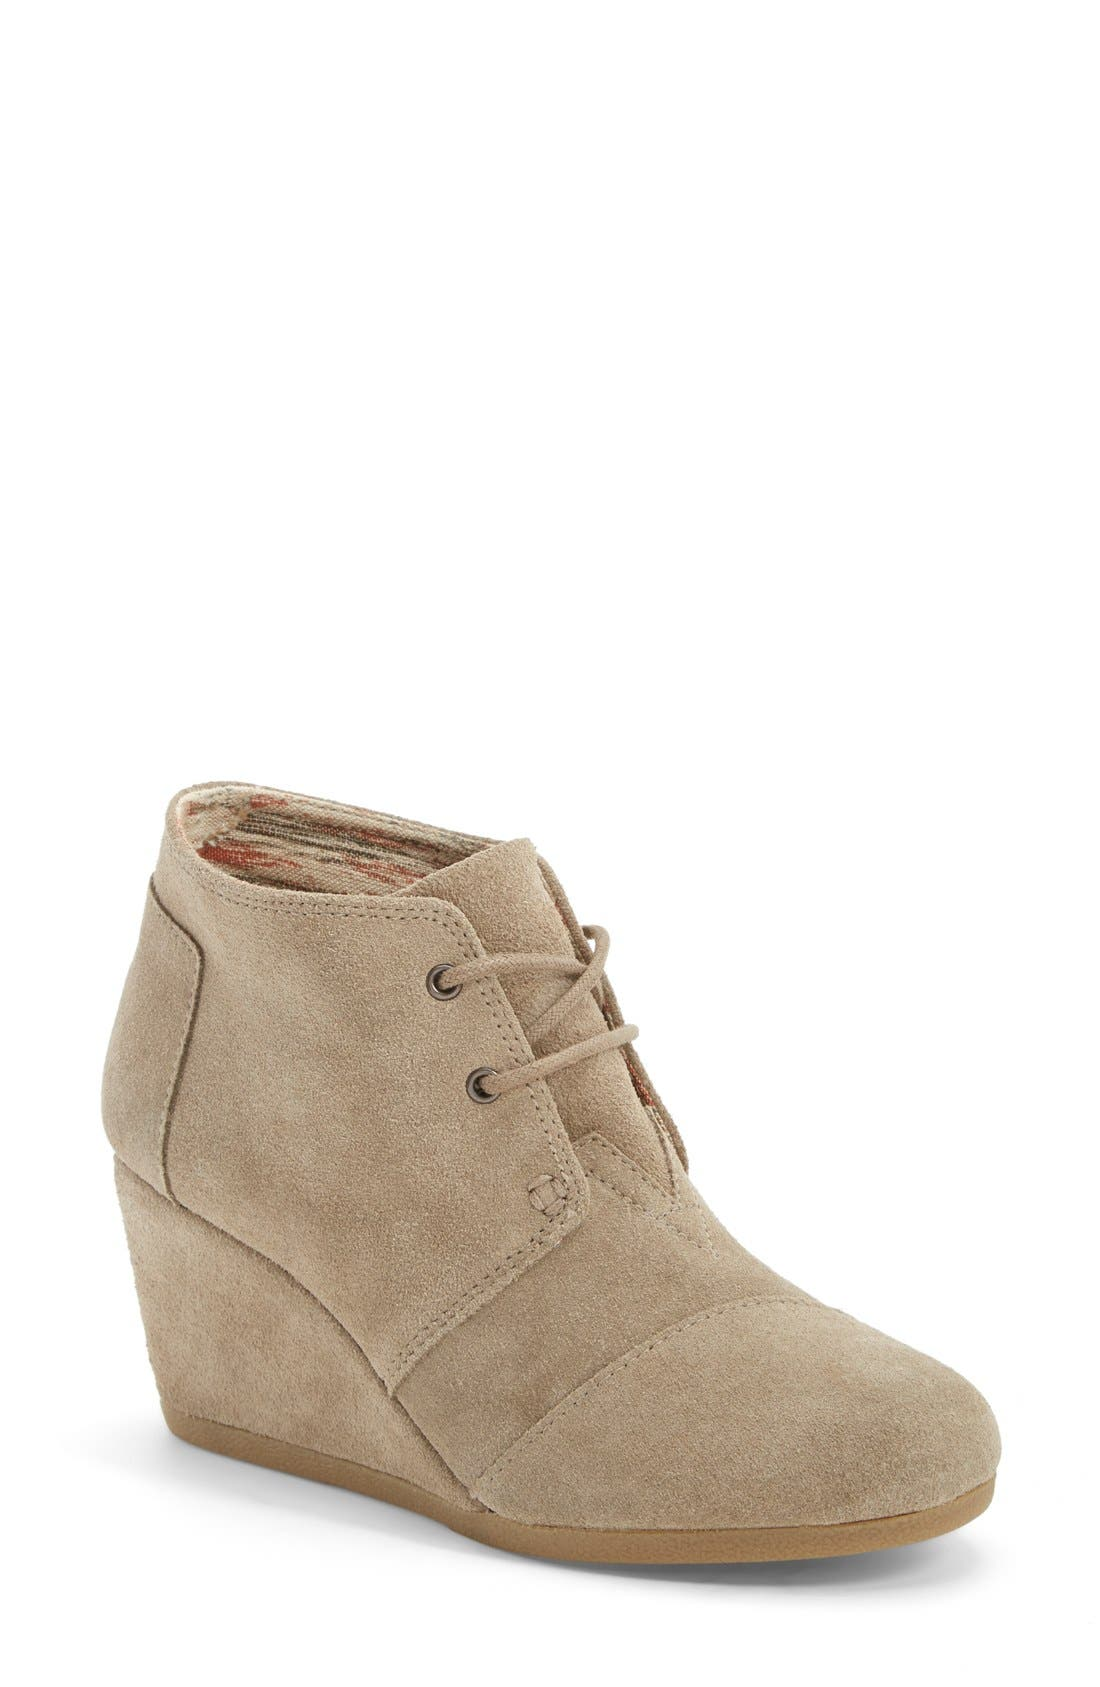 'Desert' Wedge Bootie,                             Main thumbnail 1, color,                             Taupe Suede